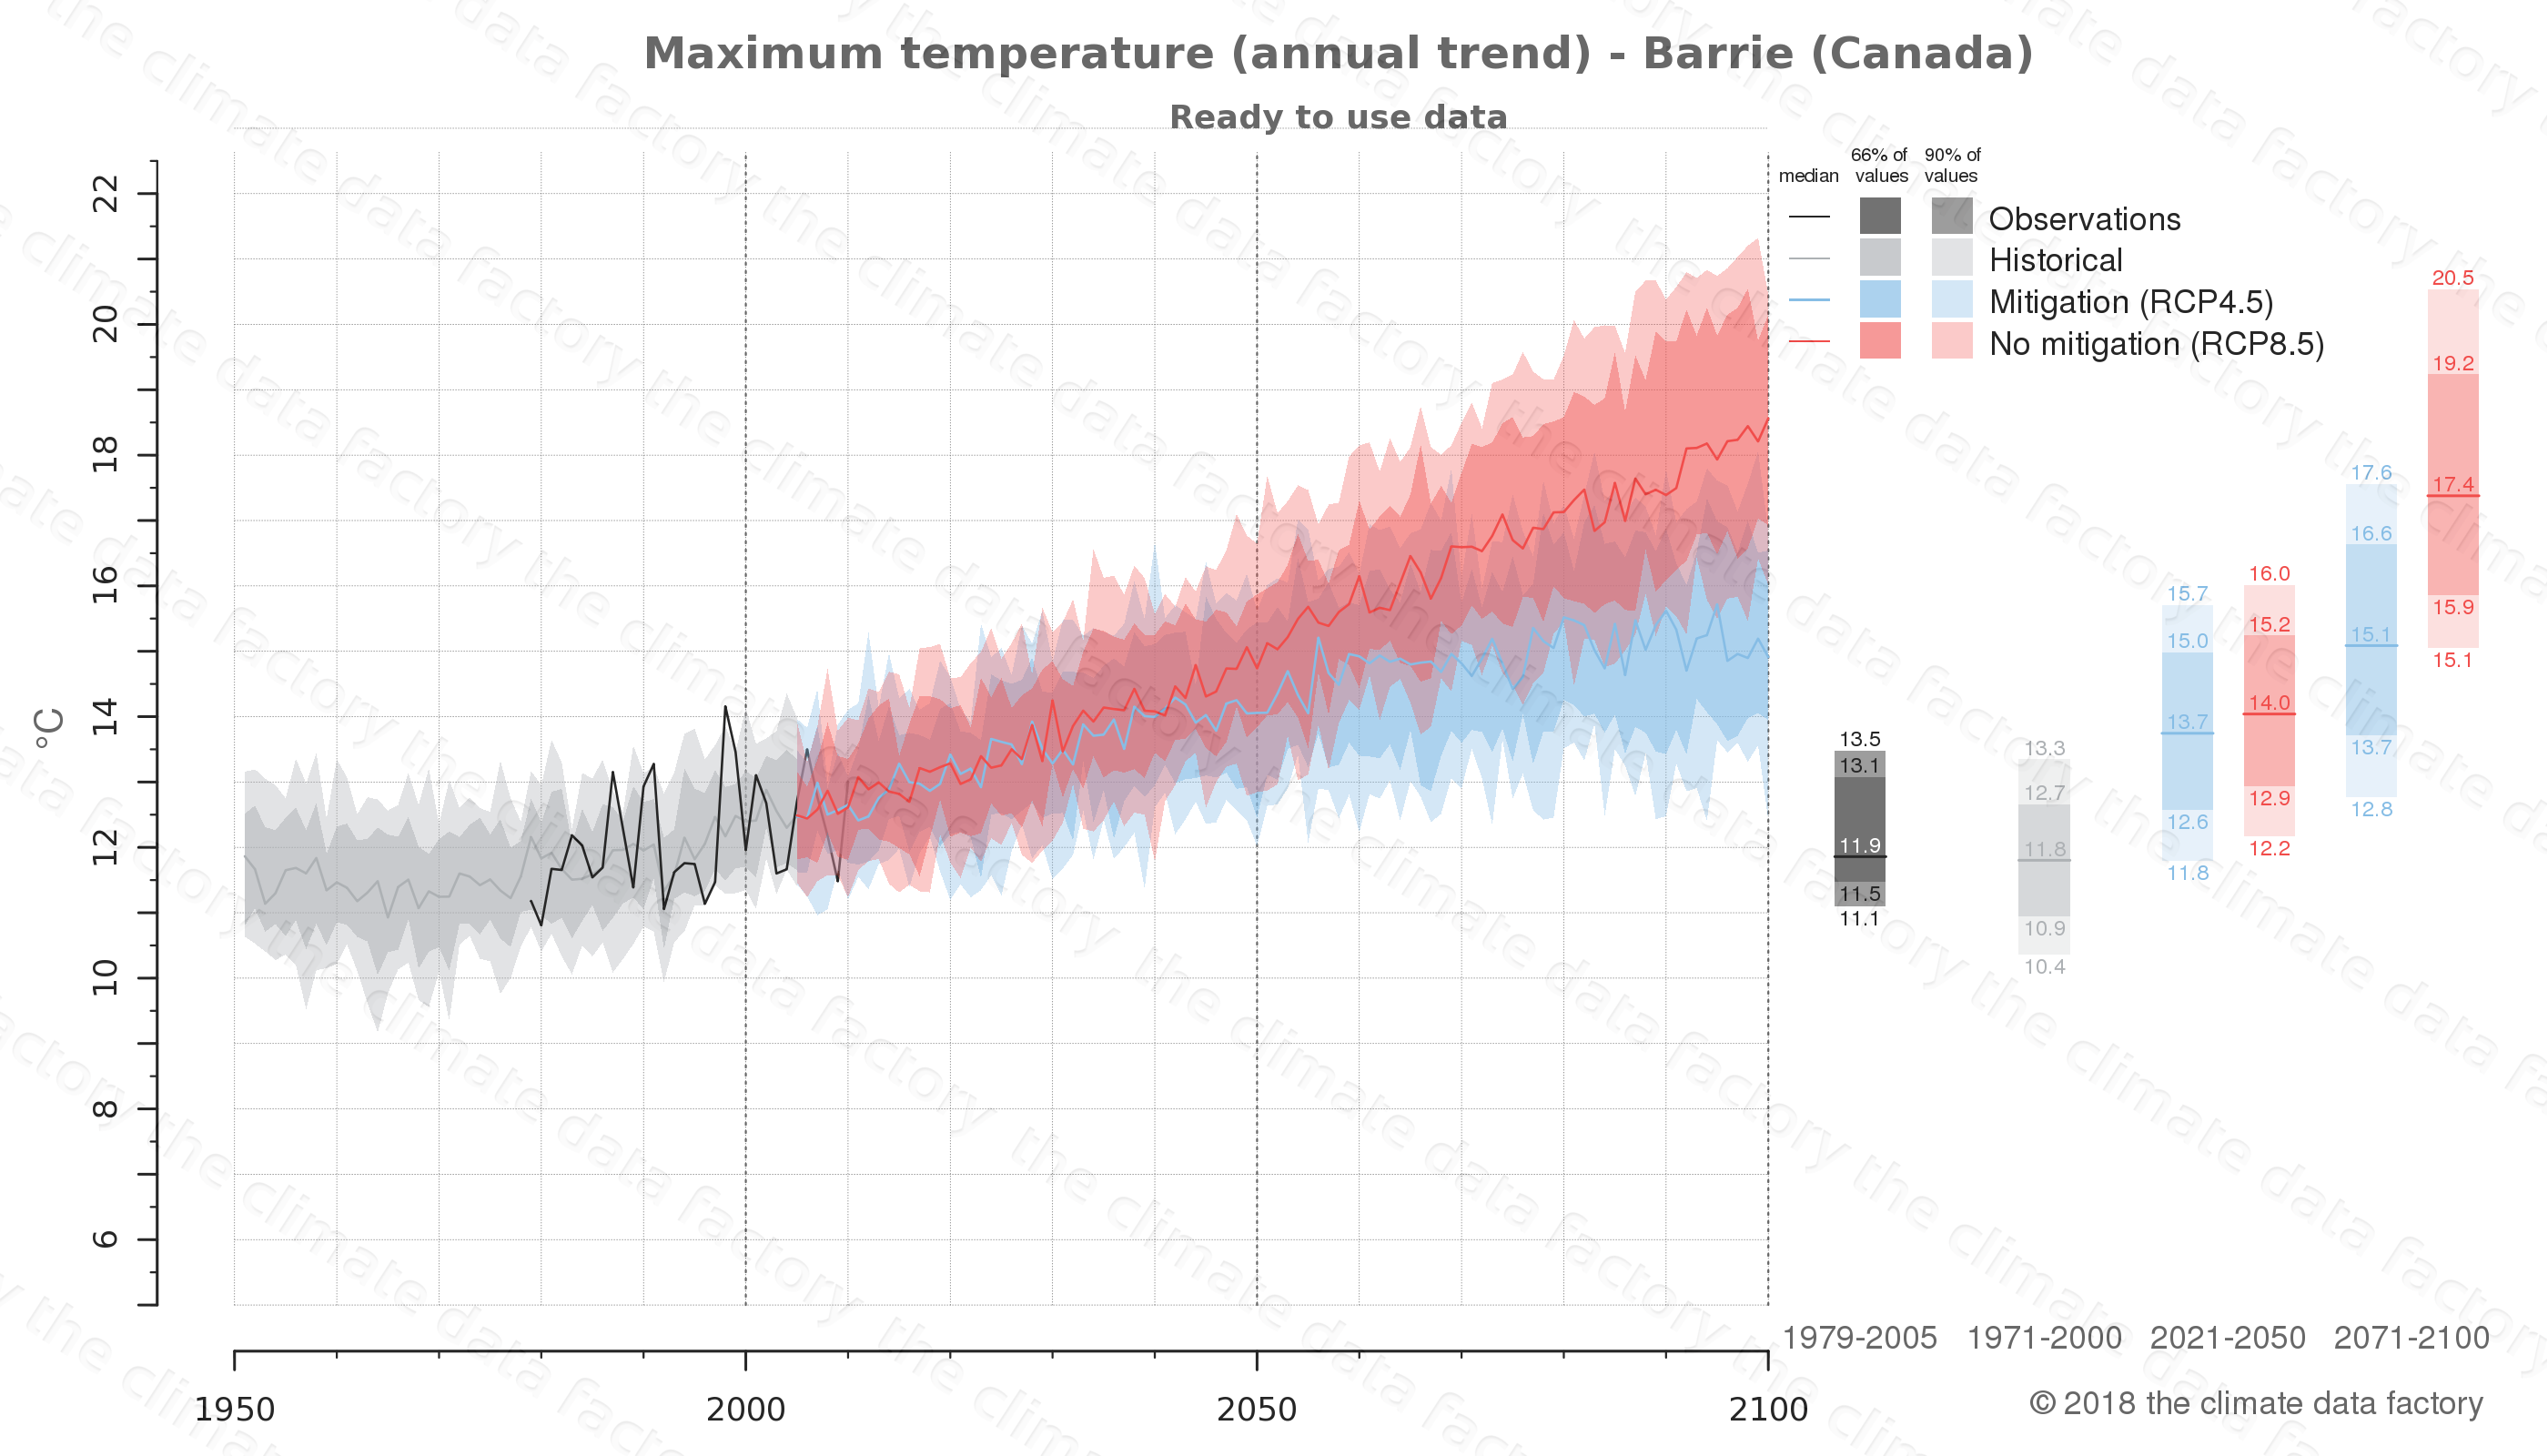 climate change data policy adaptation climate graph city data maximum-temperature barrie canada